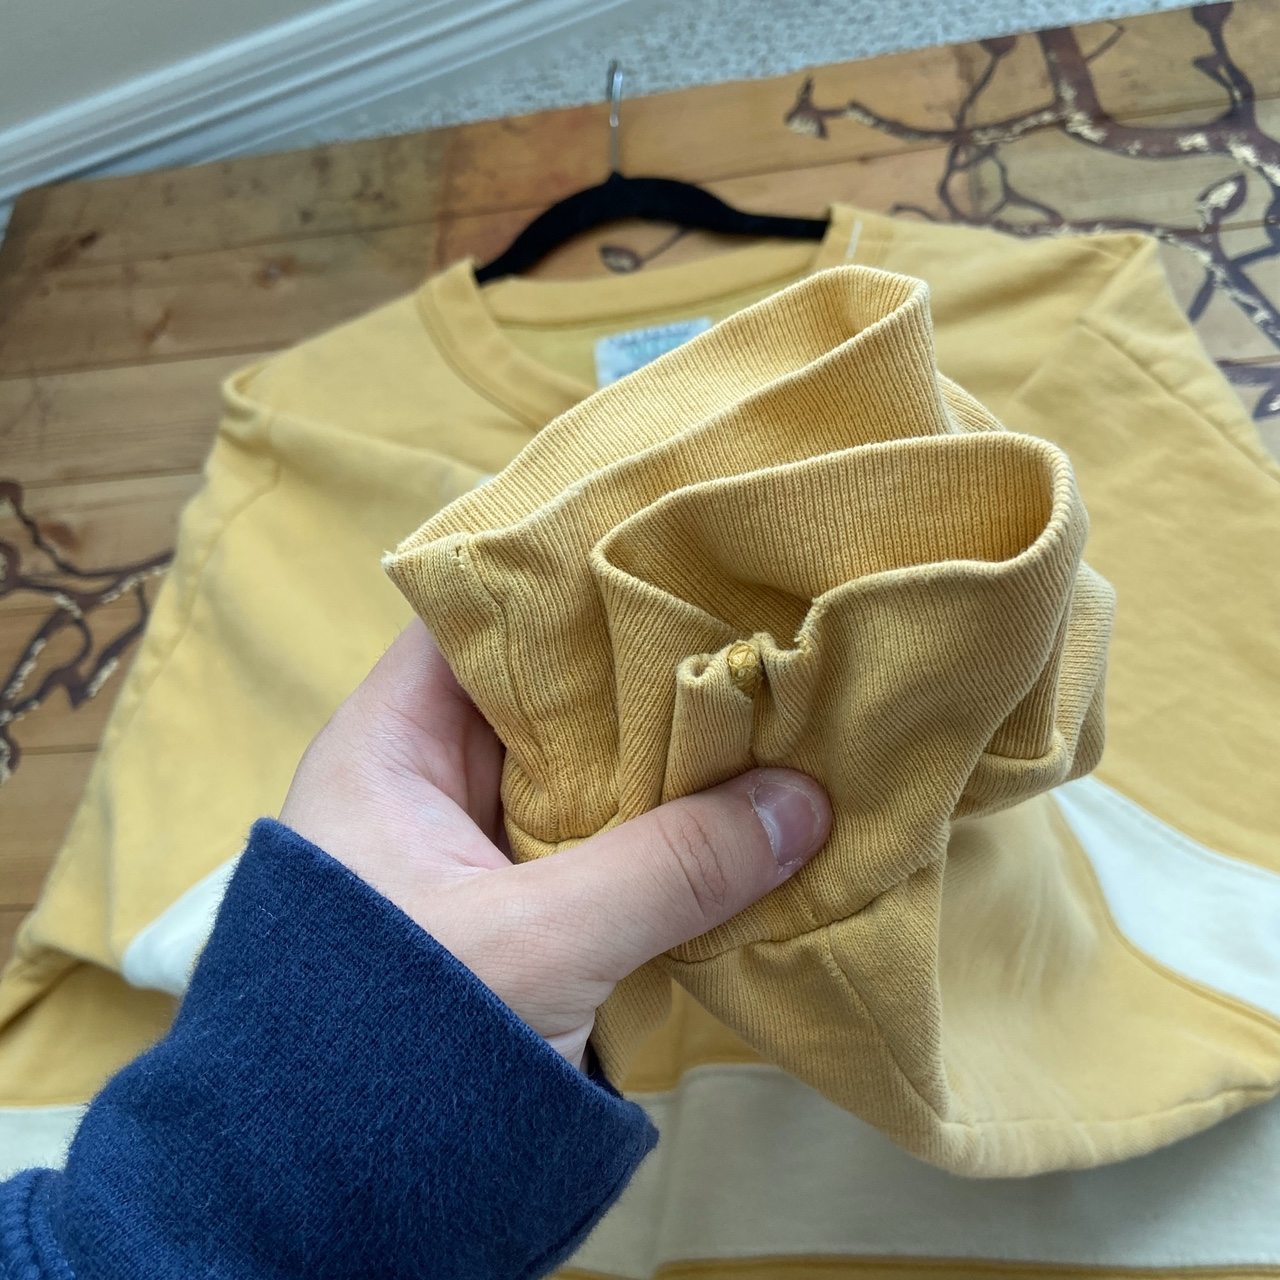 Product Image 4 - Vintage guess sweatshirt Authentic Yellow and